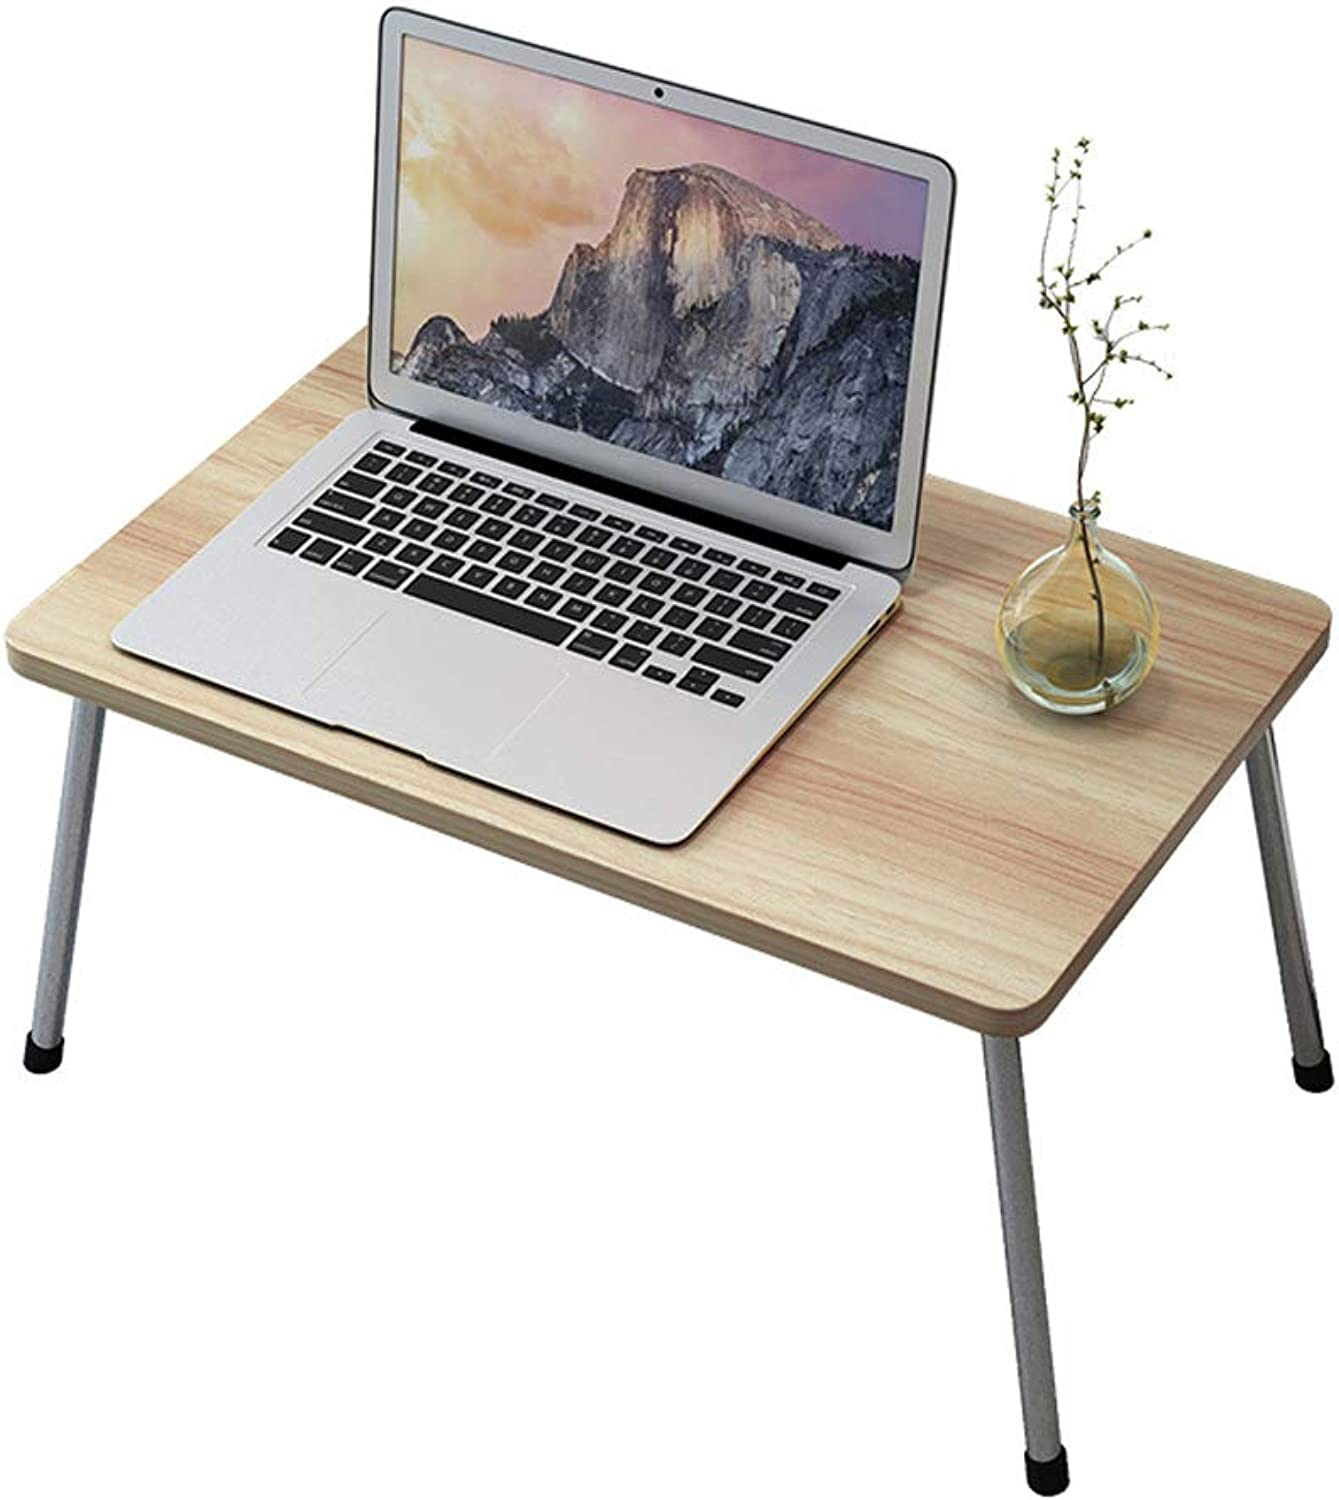 ZHAOSHUNLI Folding Table Bed Lazy Table Foldable Simple Home Bedroom Computer Sitting Table